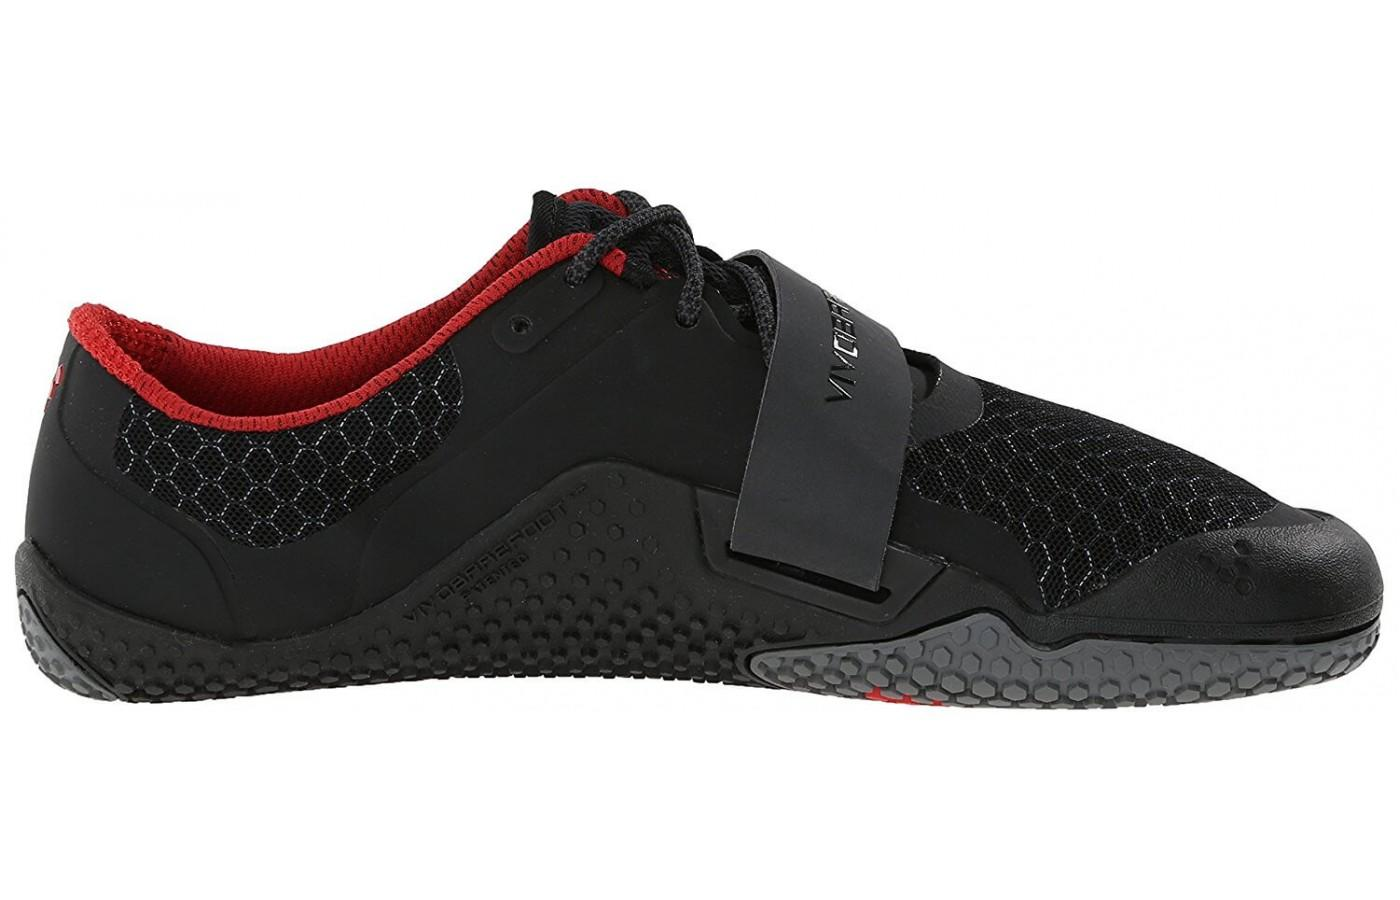 The shoe lacks any added cushioning and cumbersome stability features in the midsole.